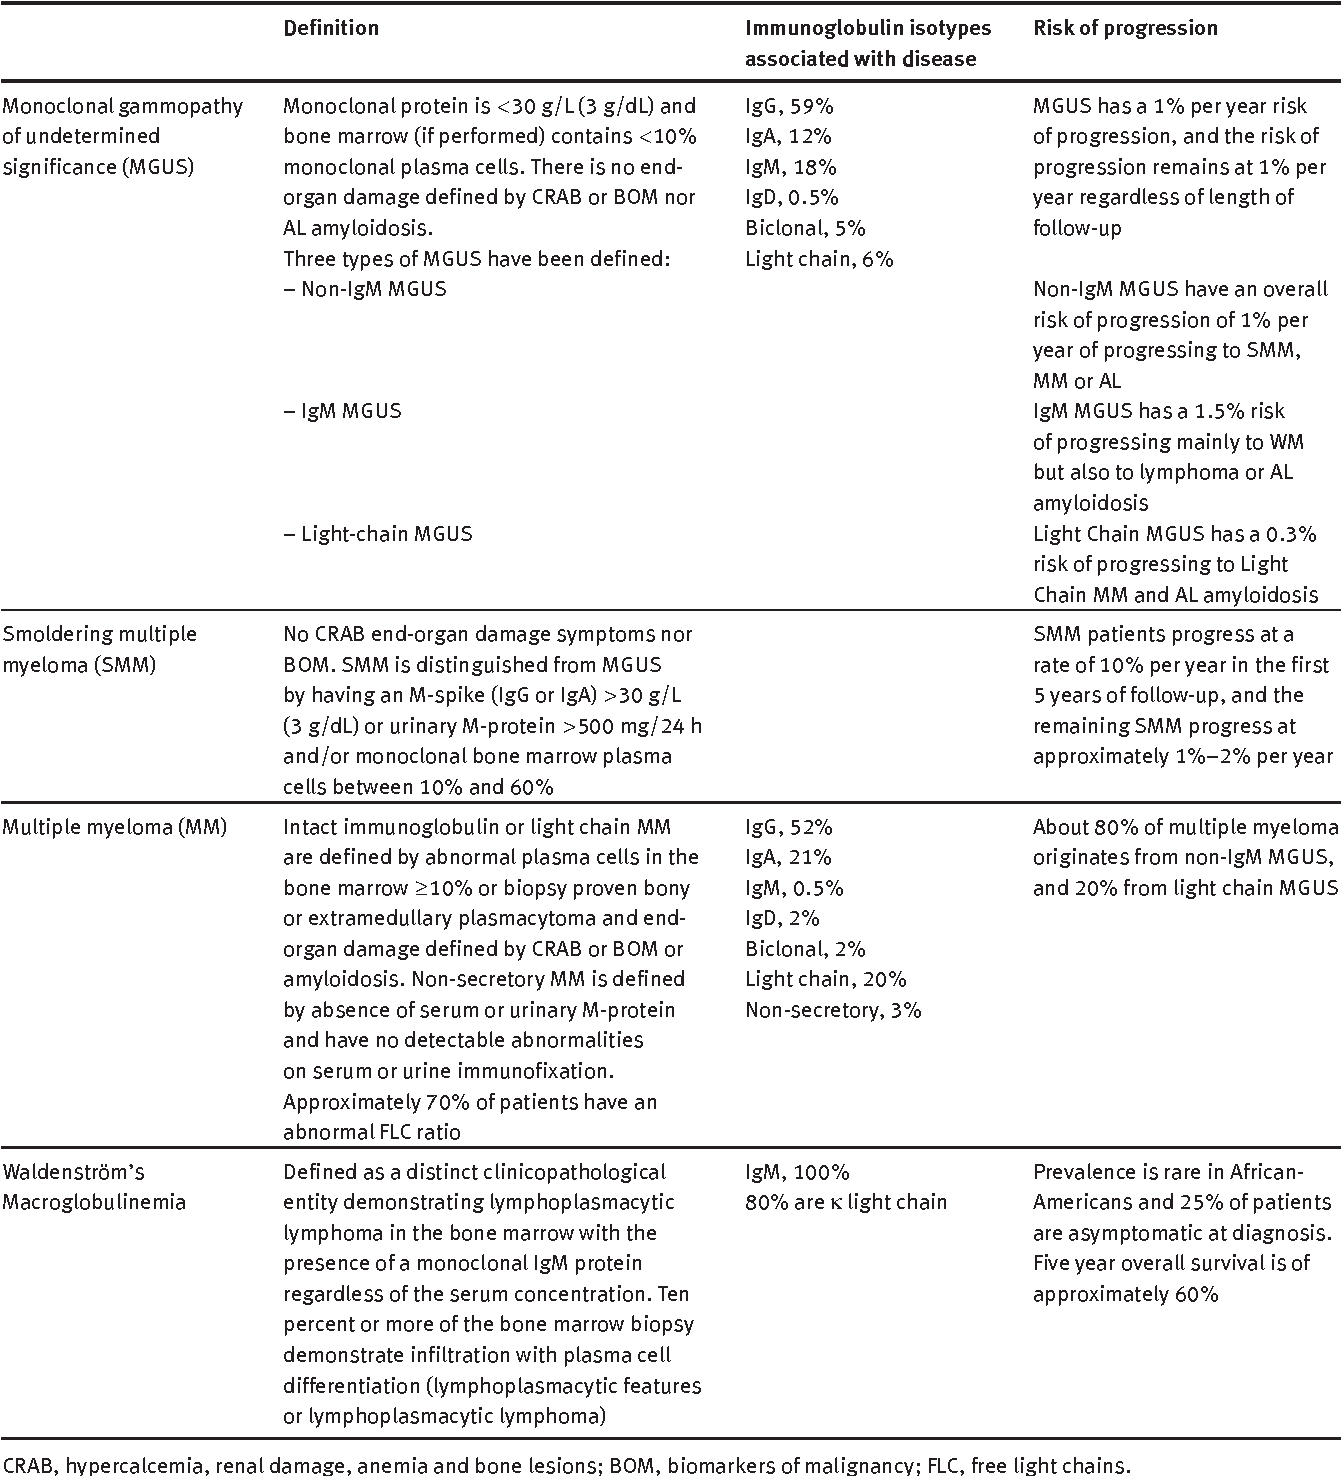 Laboratory testing requirements for diagnosis and follow-up of